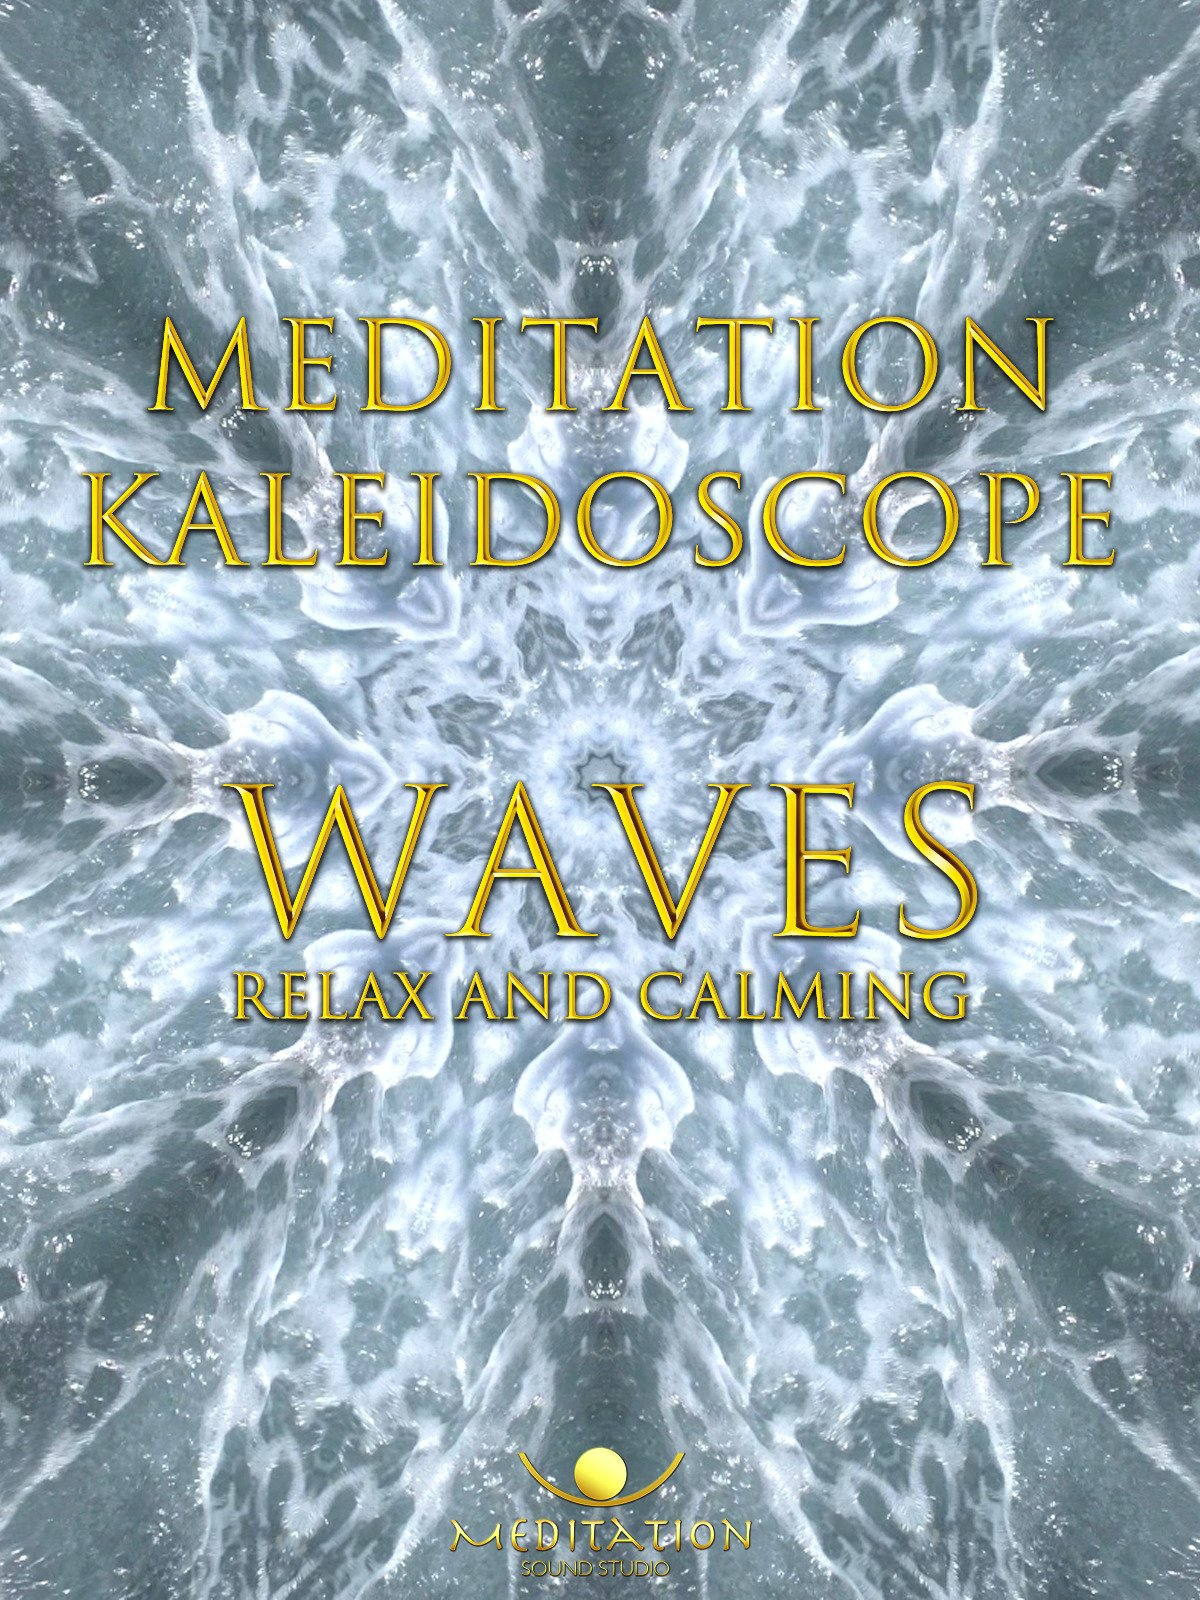 Meditation Kaleidoscope Waves Relax and Calming on Amazon Prime Instant Video UK